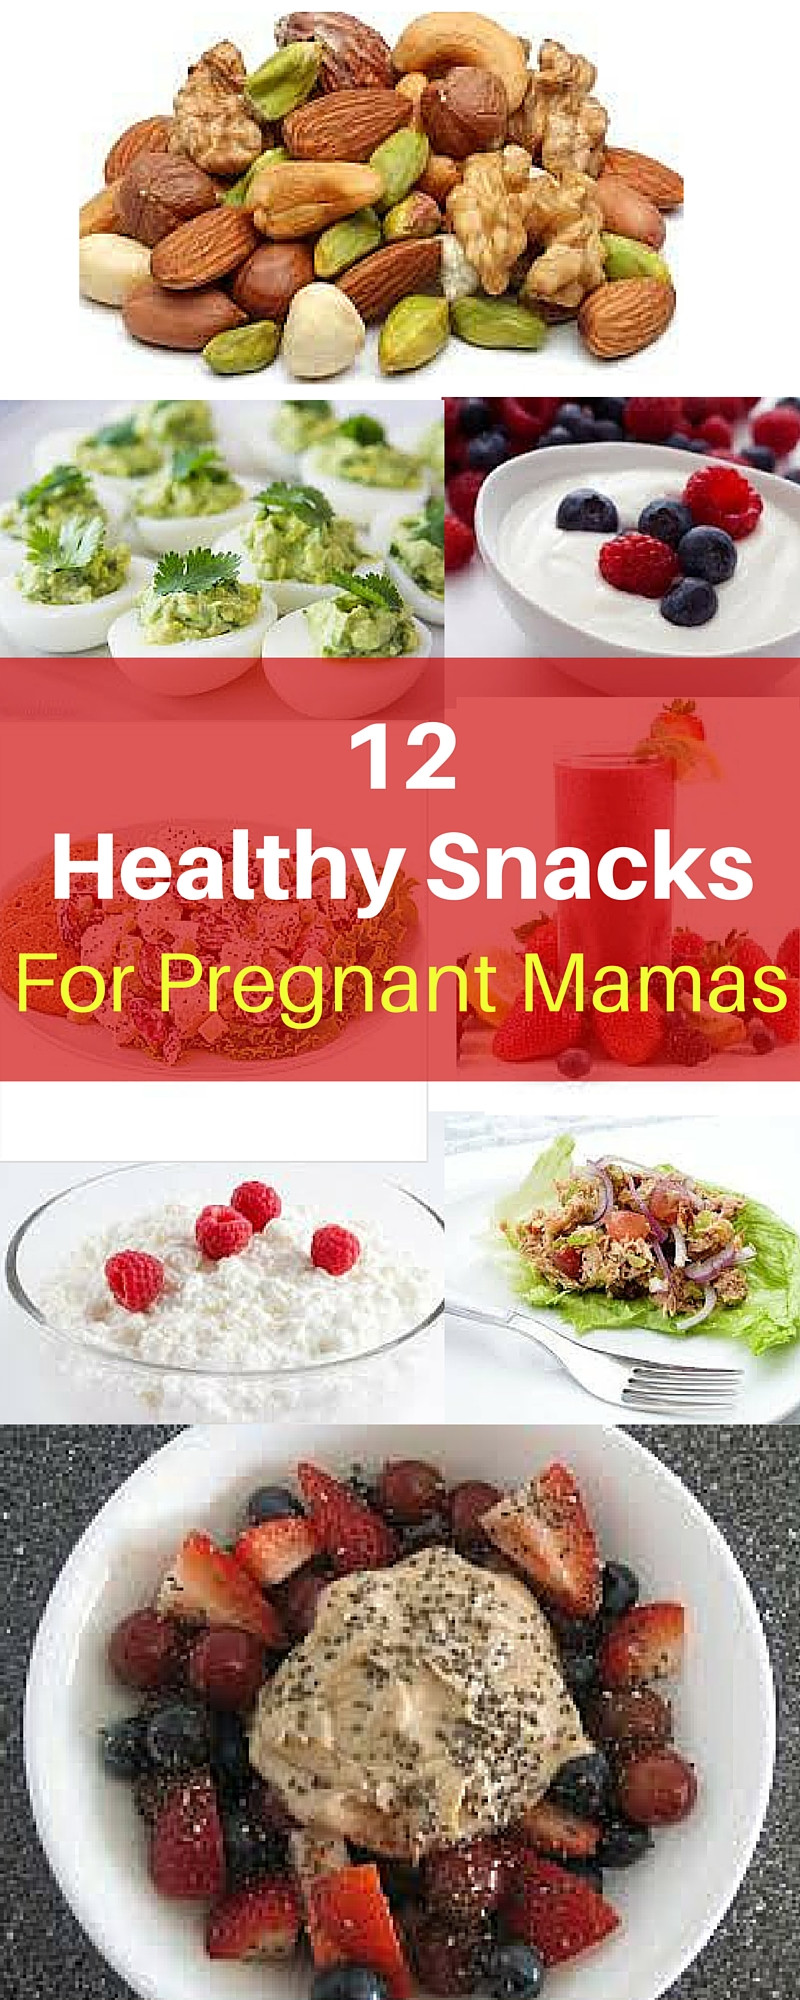 Healthy Snacks While Pregnant  10 Healthy Snacks For Pregnant Mamas Michelle Marie Fit